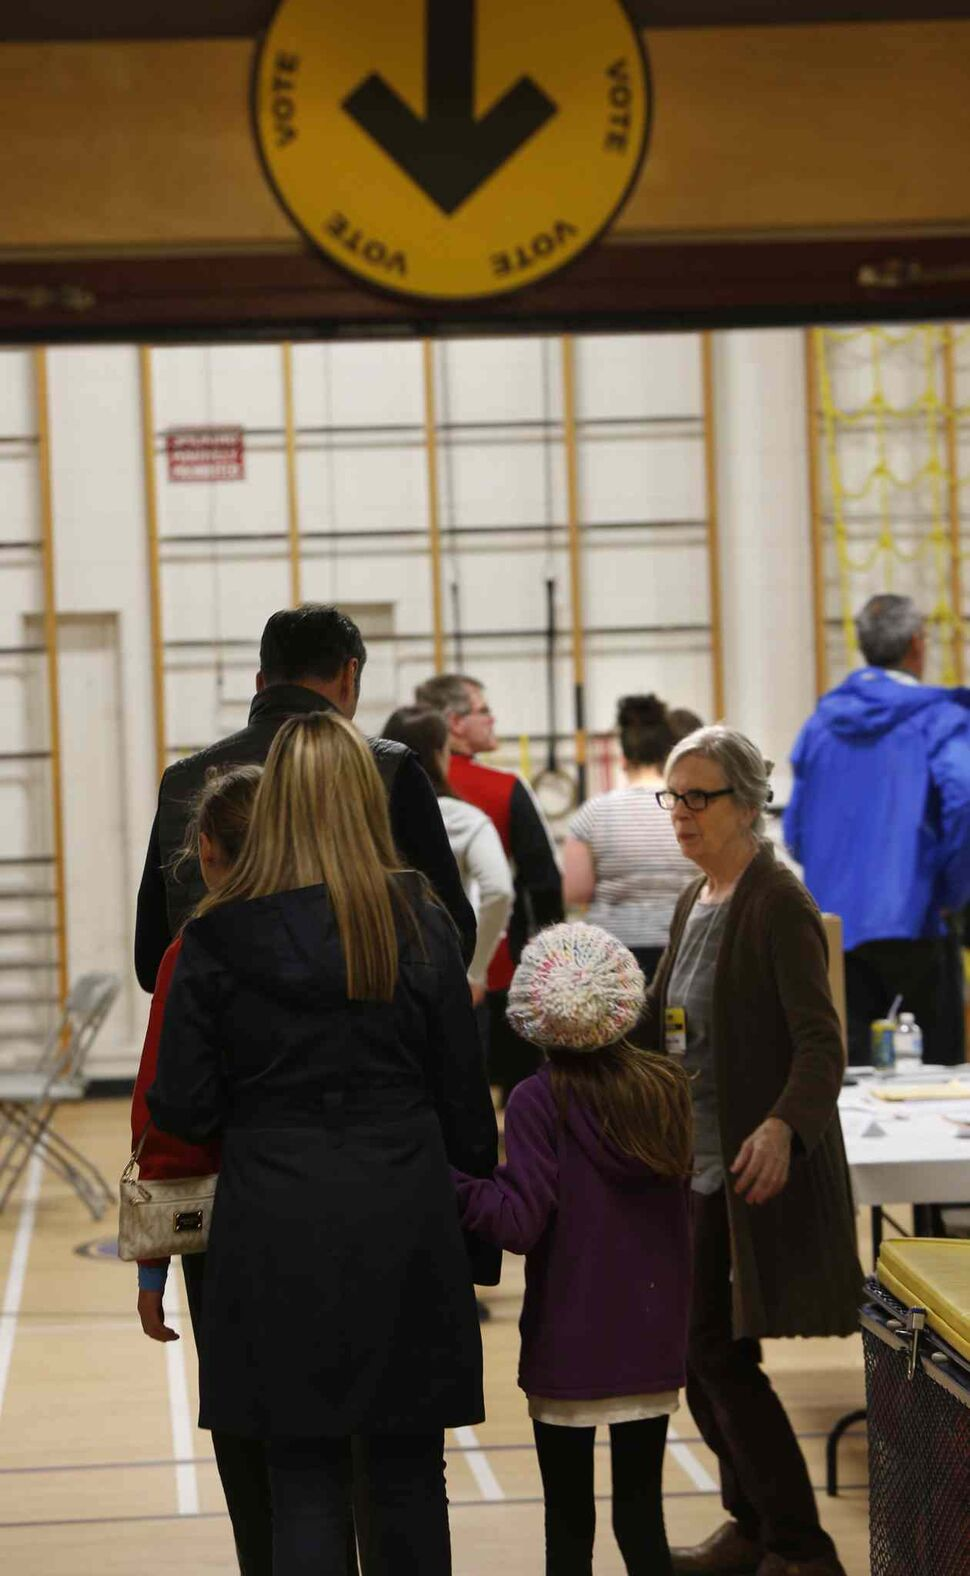 A steady flow of voters in the federal election at the polling station in Oakenwald School at 6:30pm Monday. The wait time was about 5minutes.  Wayne Glowacki / Winnipeg Free Press October 19 2015